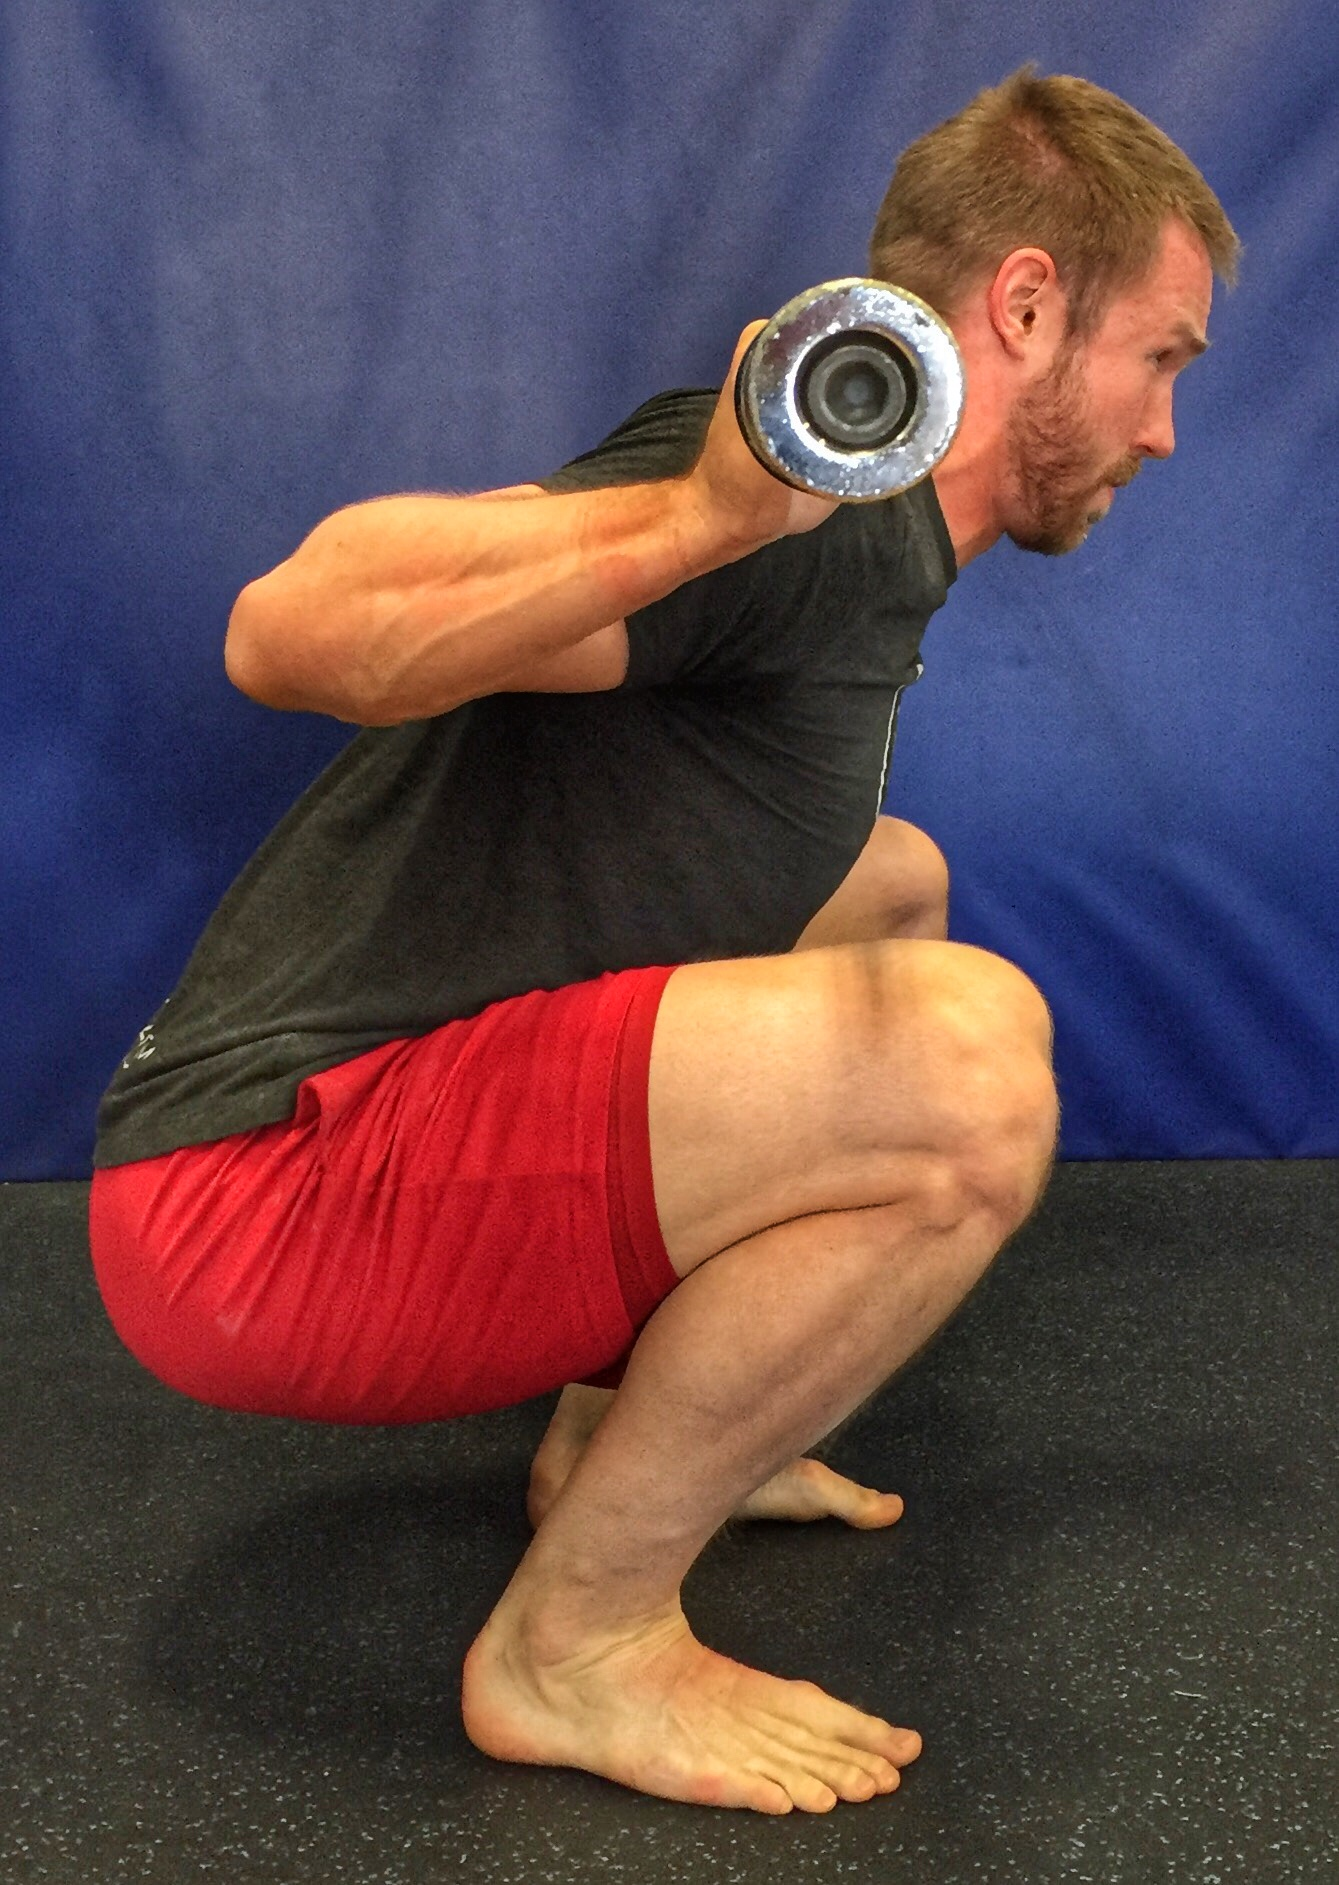 Wearing The Right Shoes For Squatting